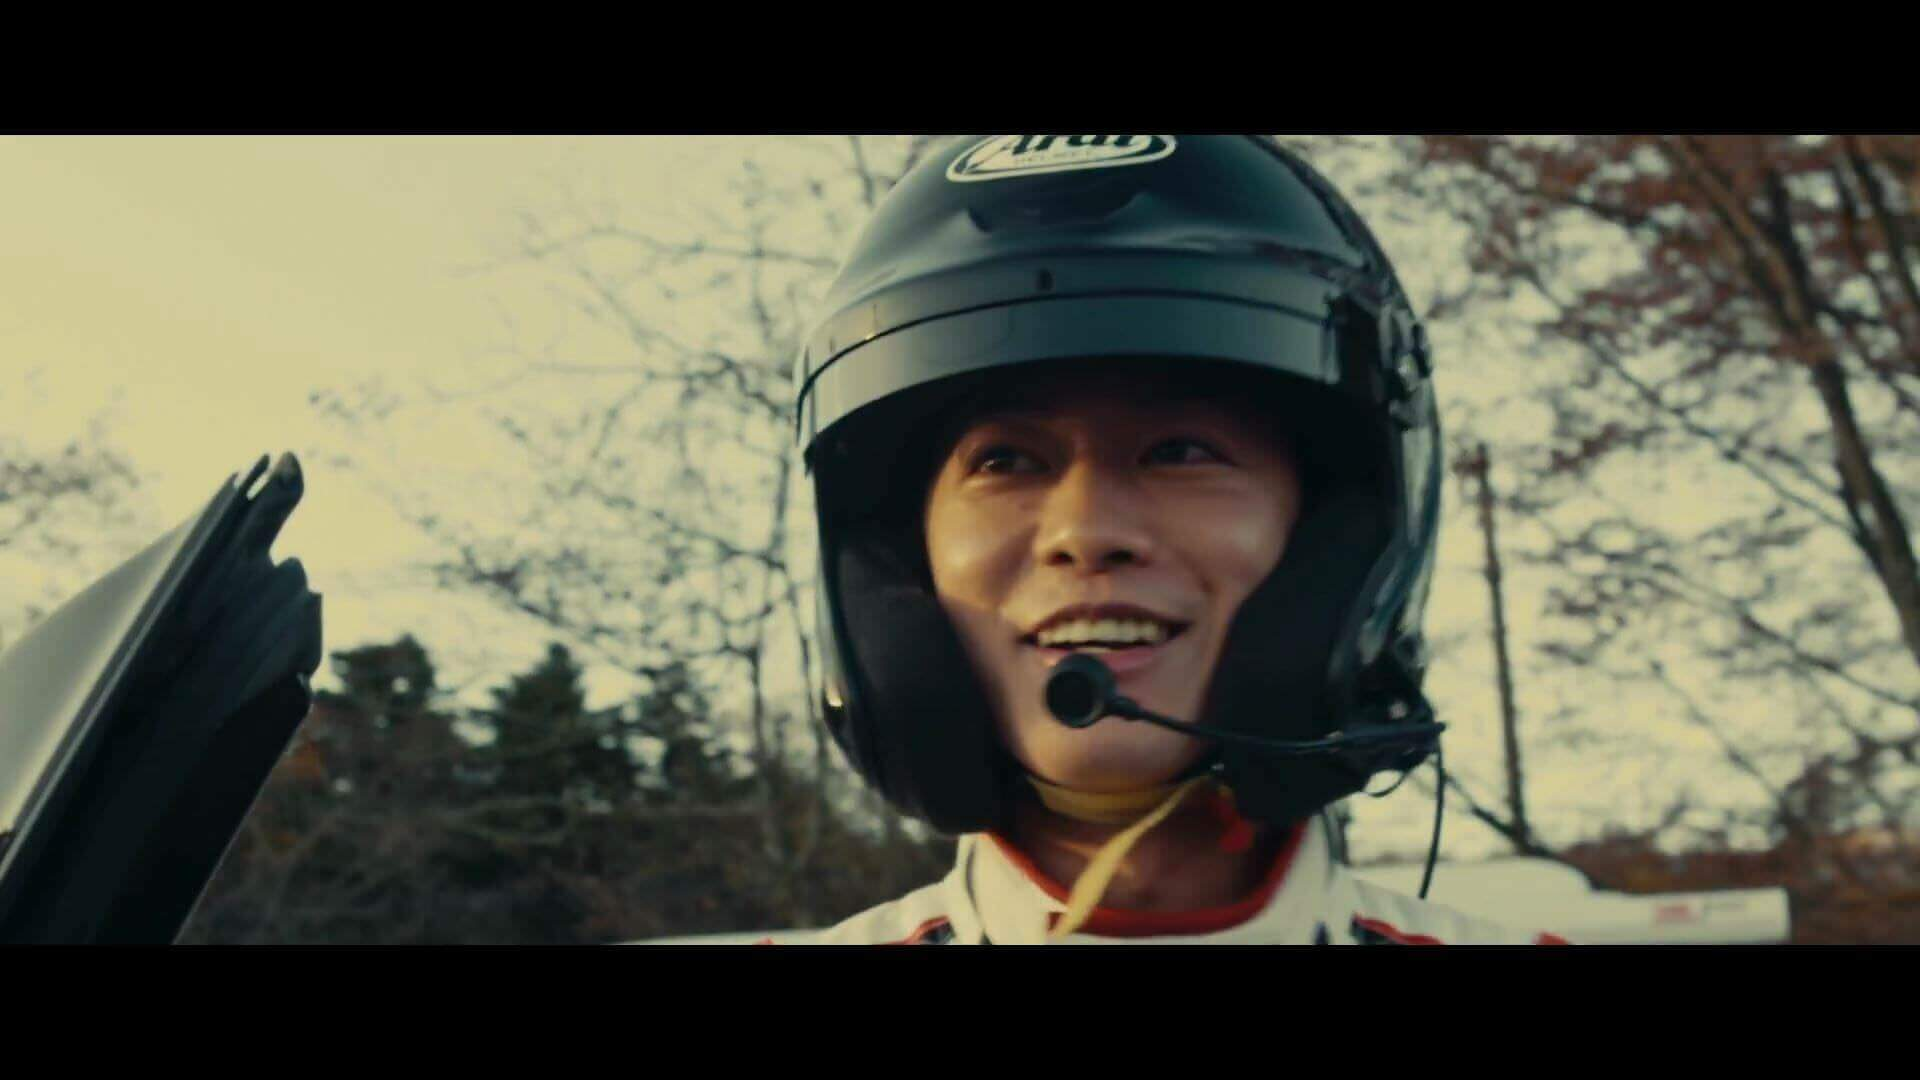 TOYOTA GAZOO Racing TAKERU SATOH MEETS GAZOO MORIZO mp4 20170712 101648 745